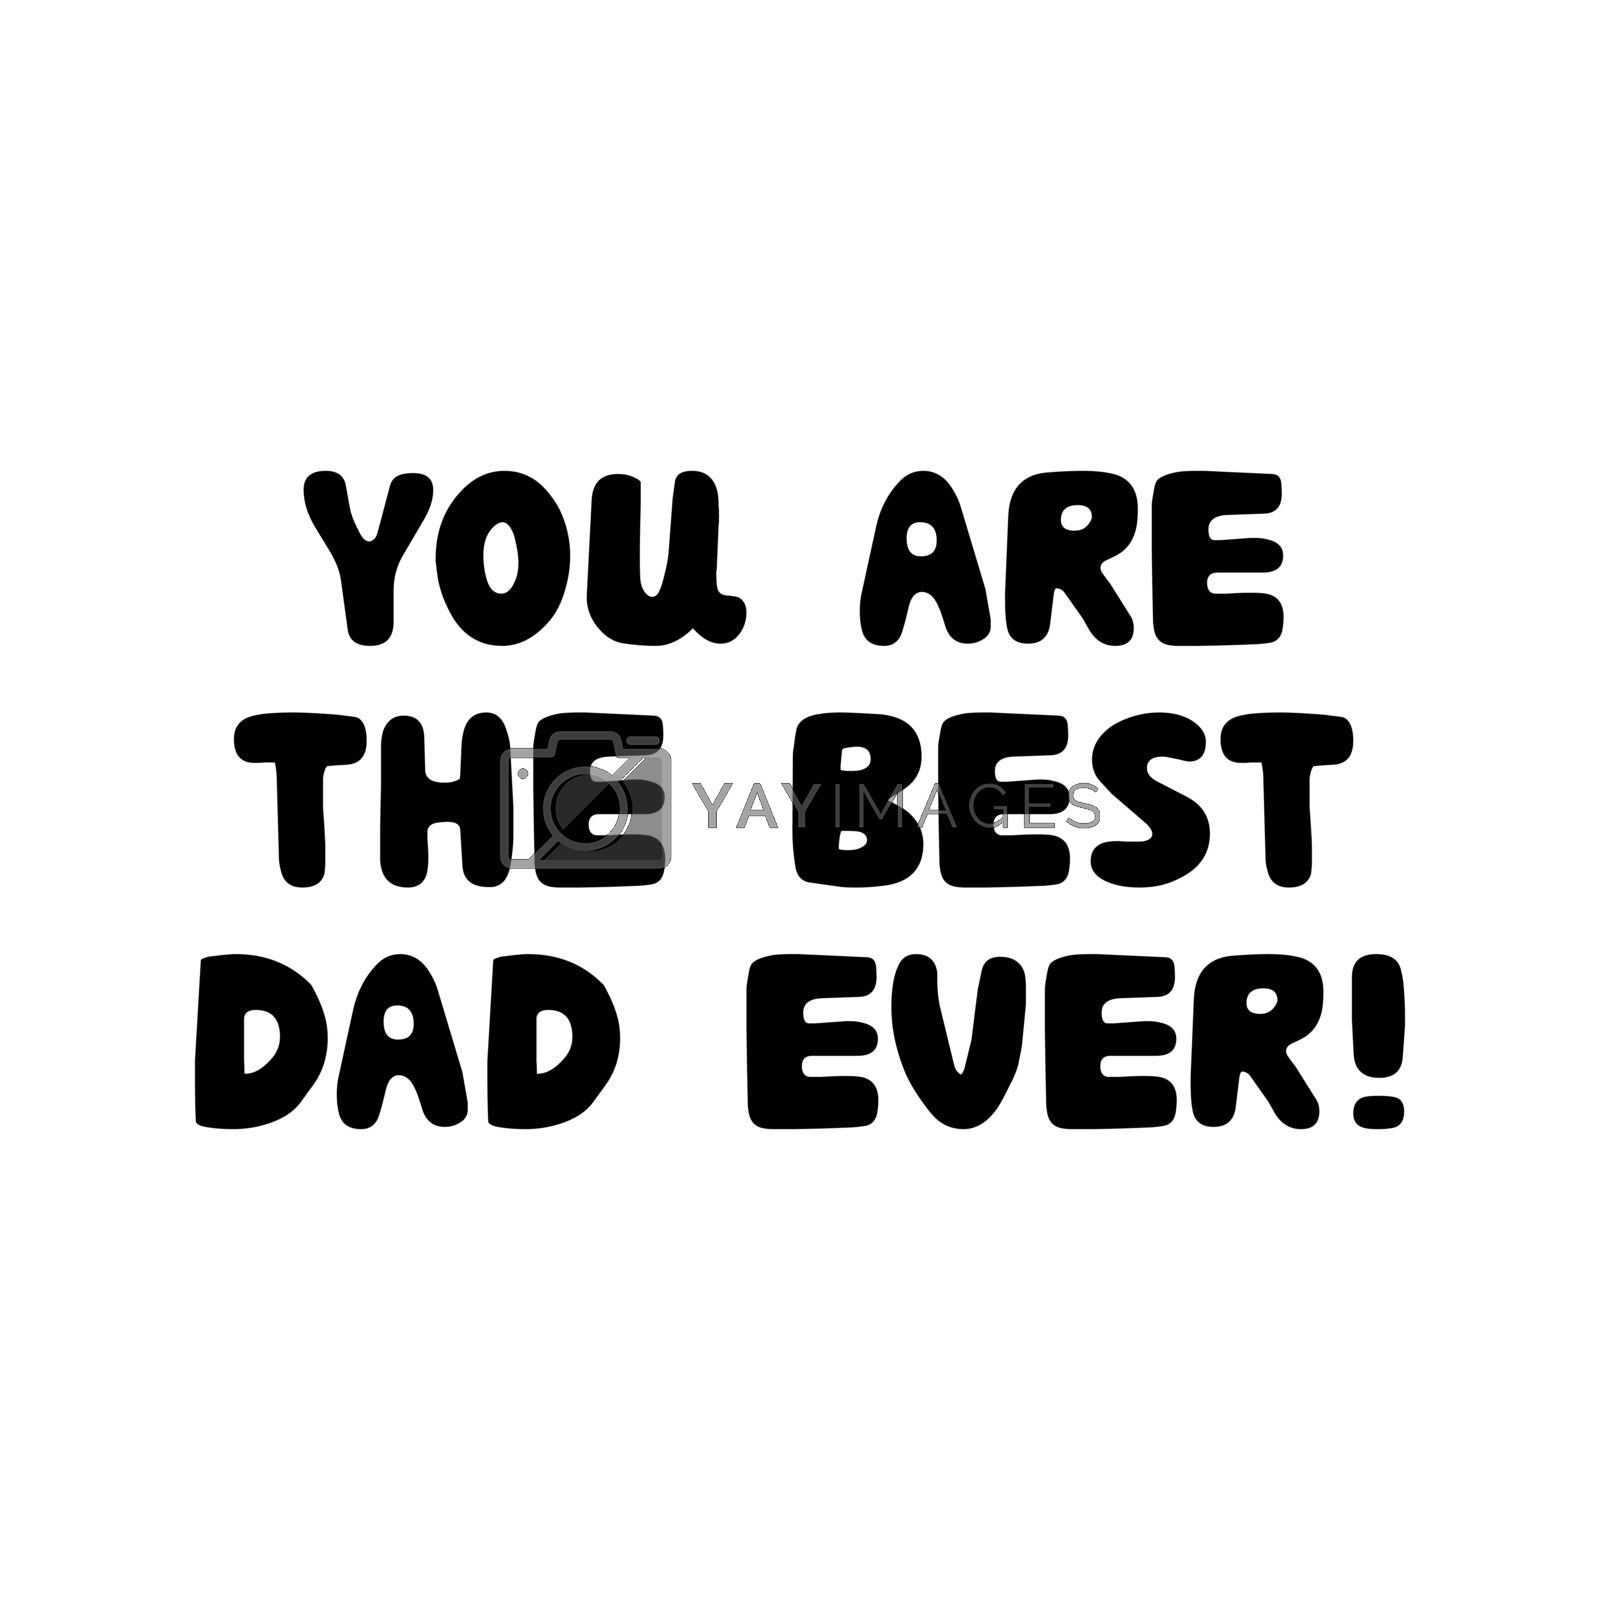 You are the best dad ever. Cute hand drawn bauble lettering. Isolated on white. Vector stock illustration.